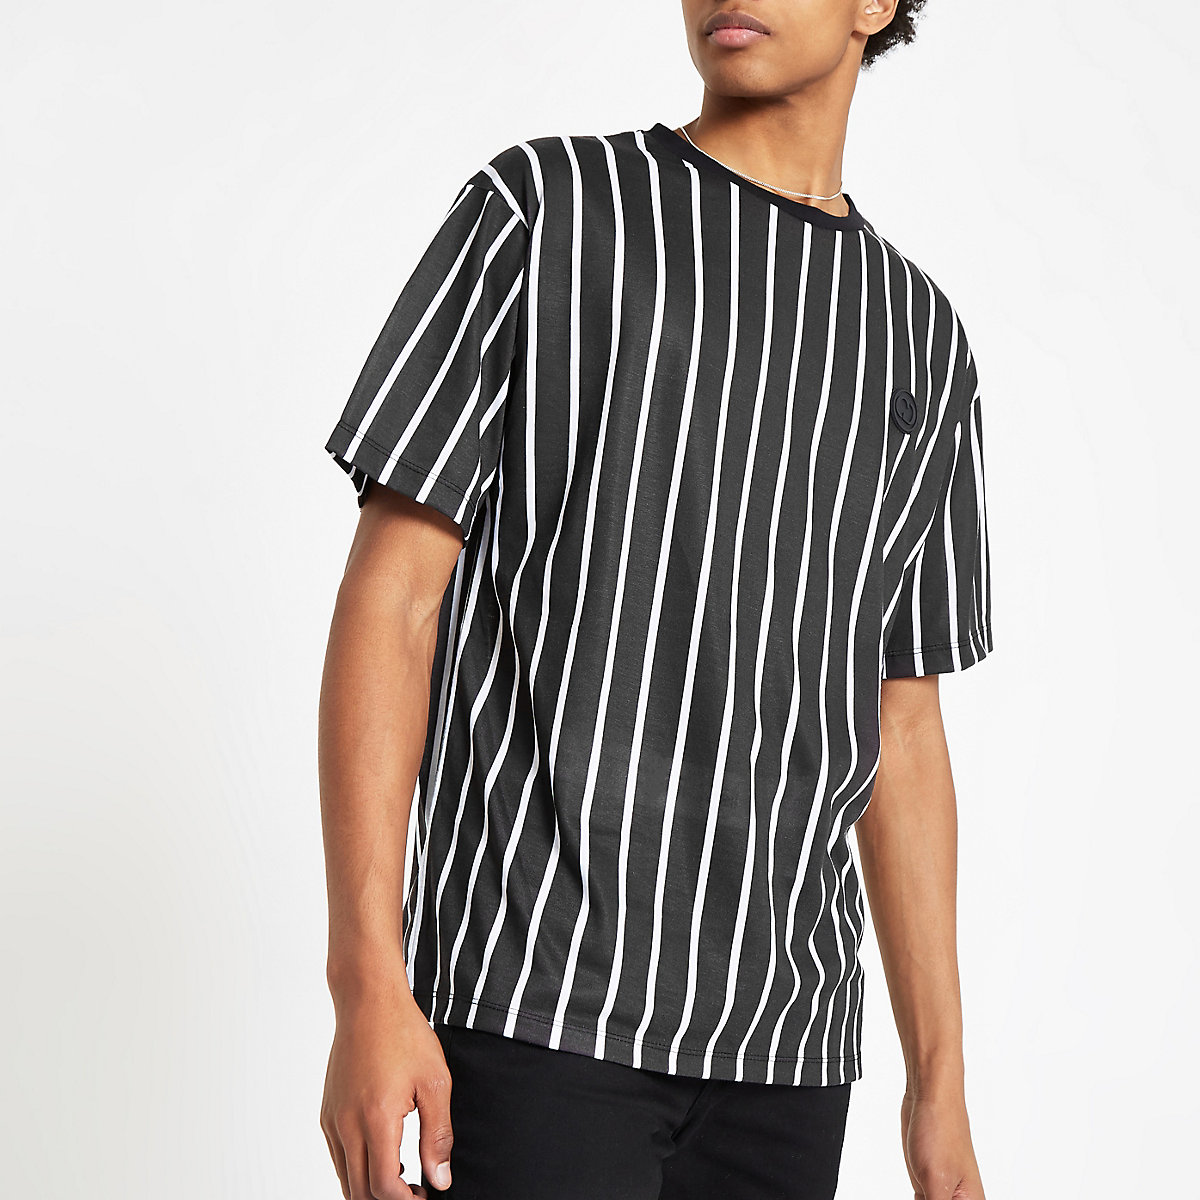 Criminal Damage black pinstripe T-shirt